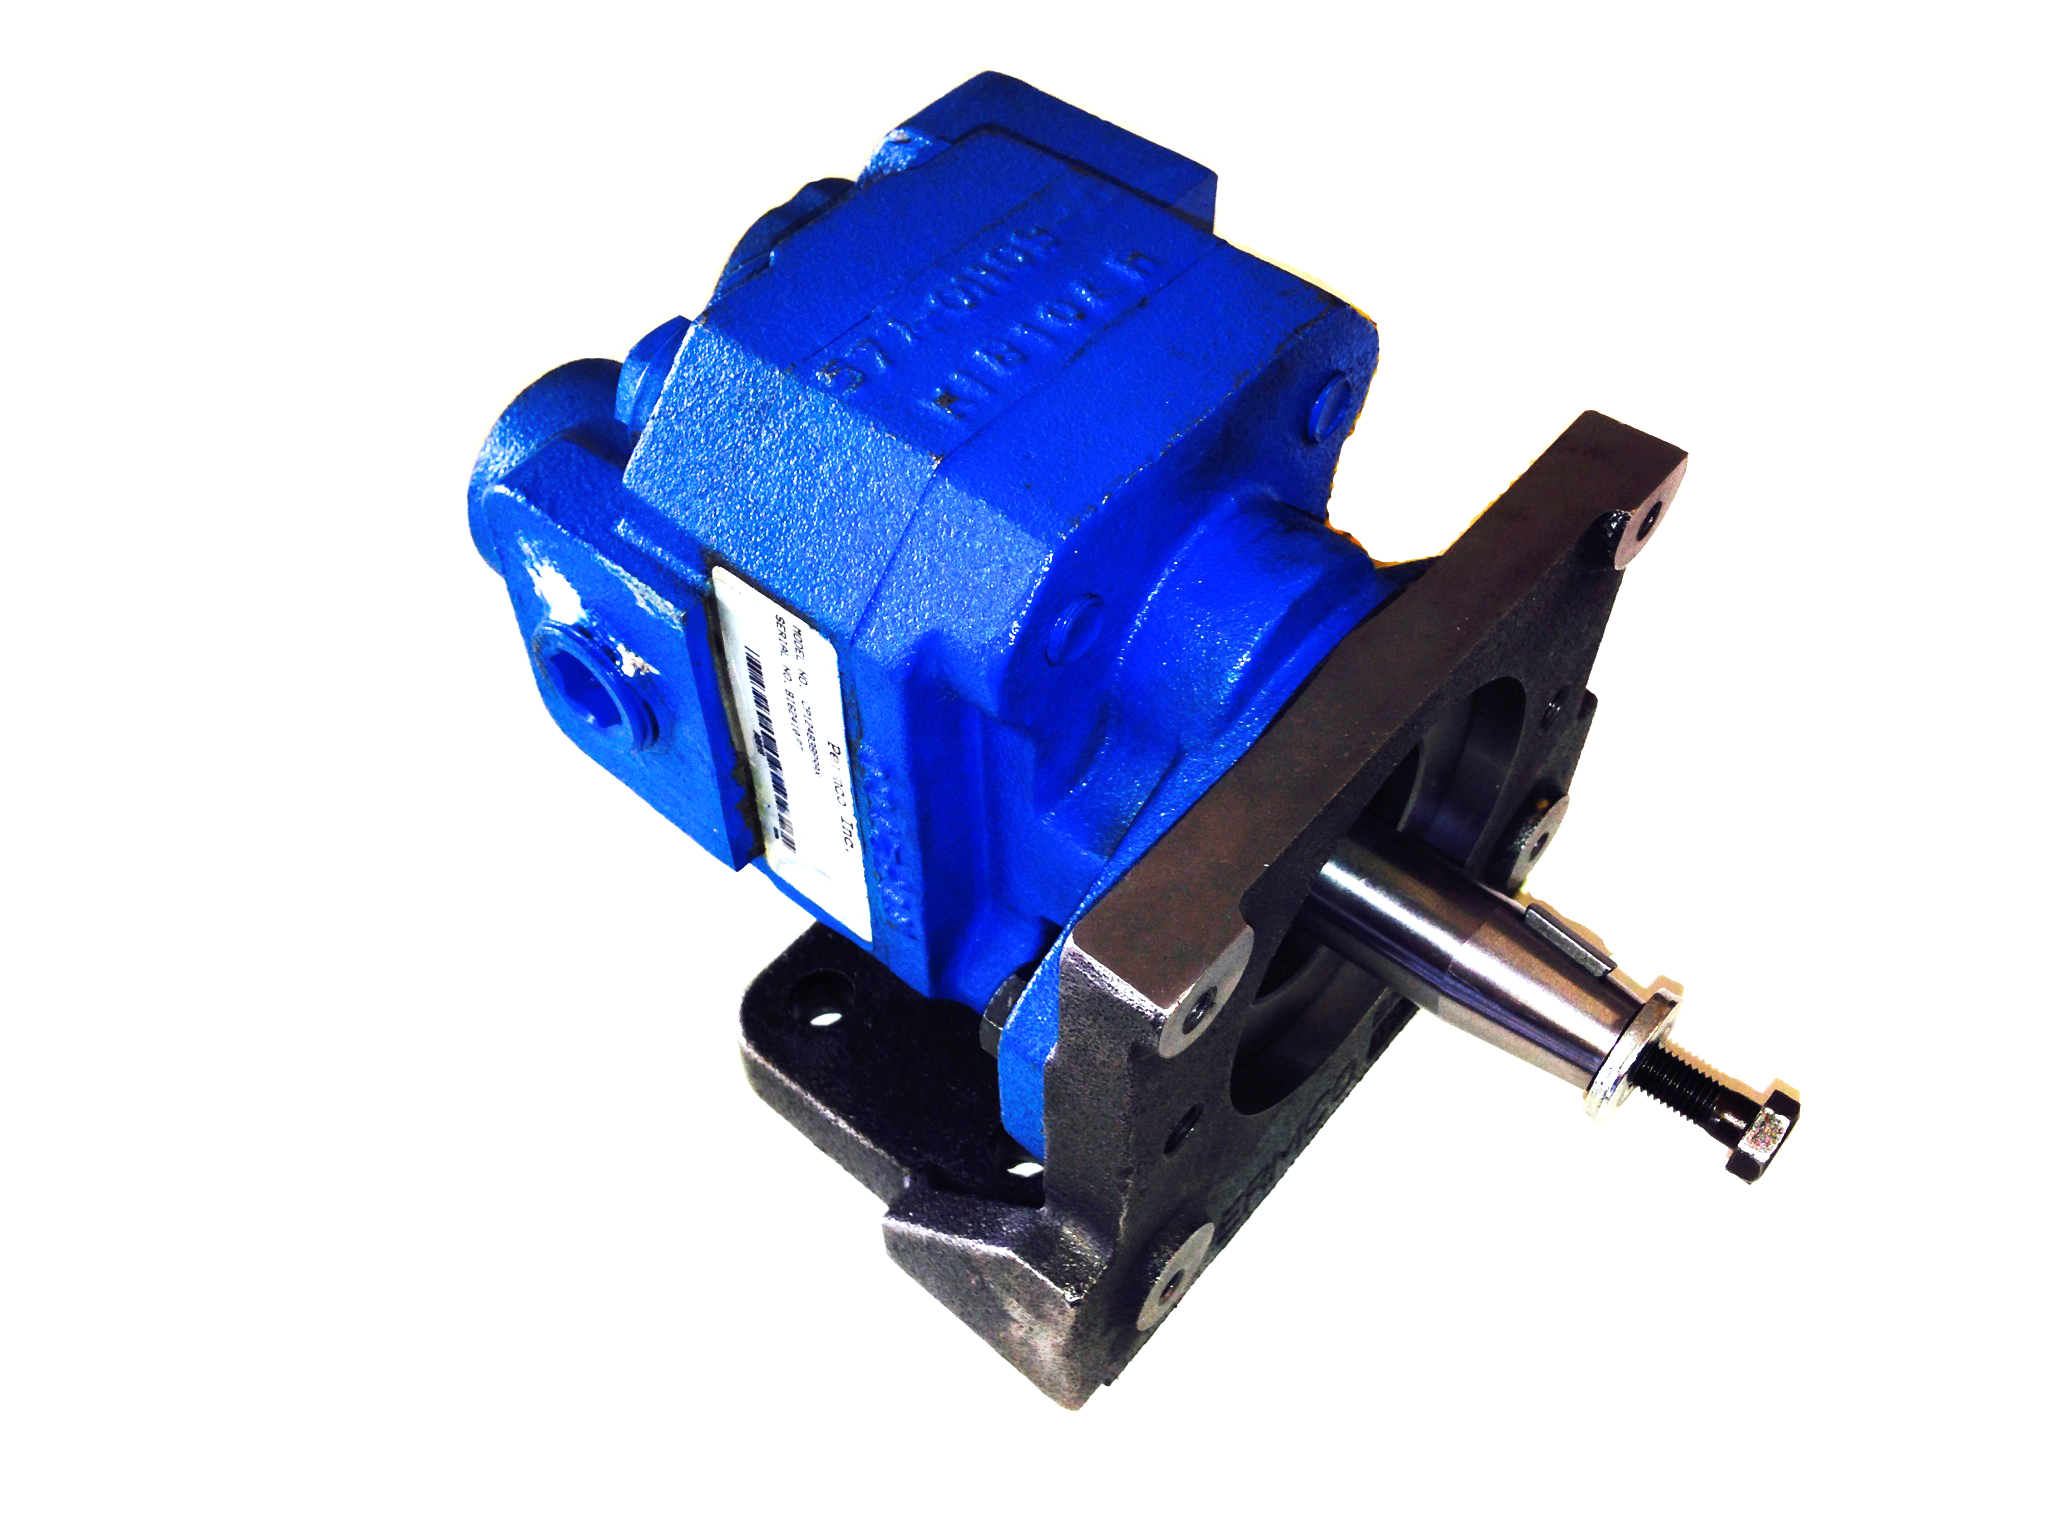 Permco_P123_Pump_no_Clutch